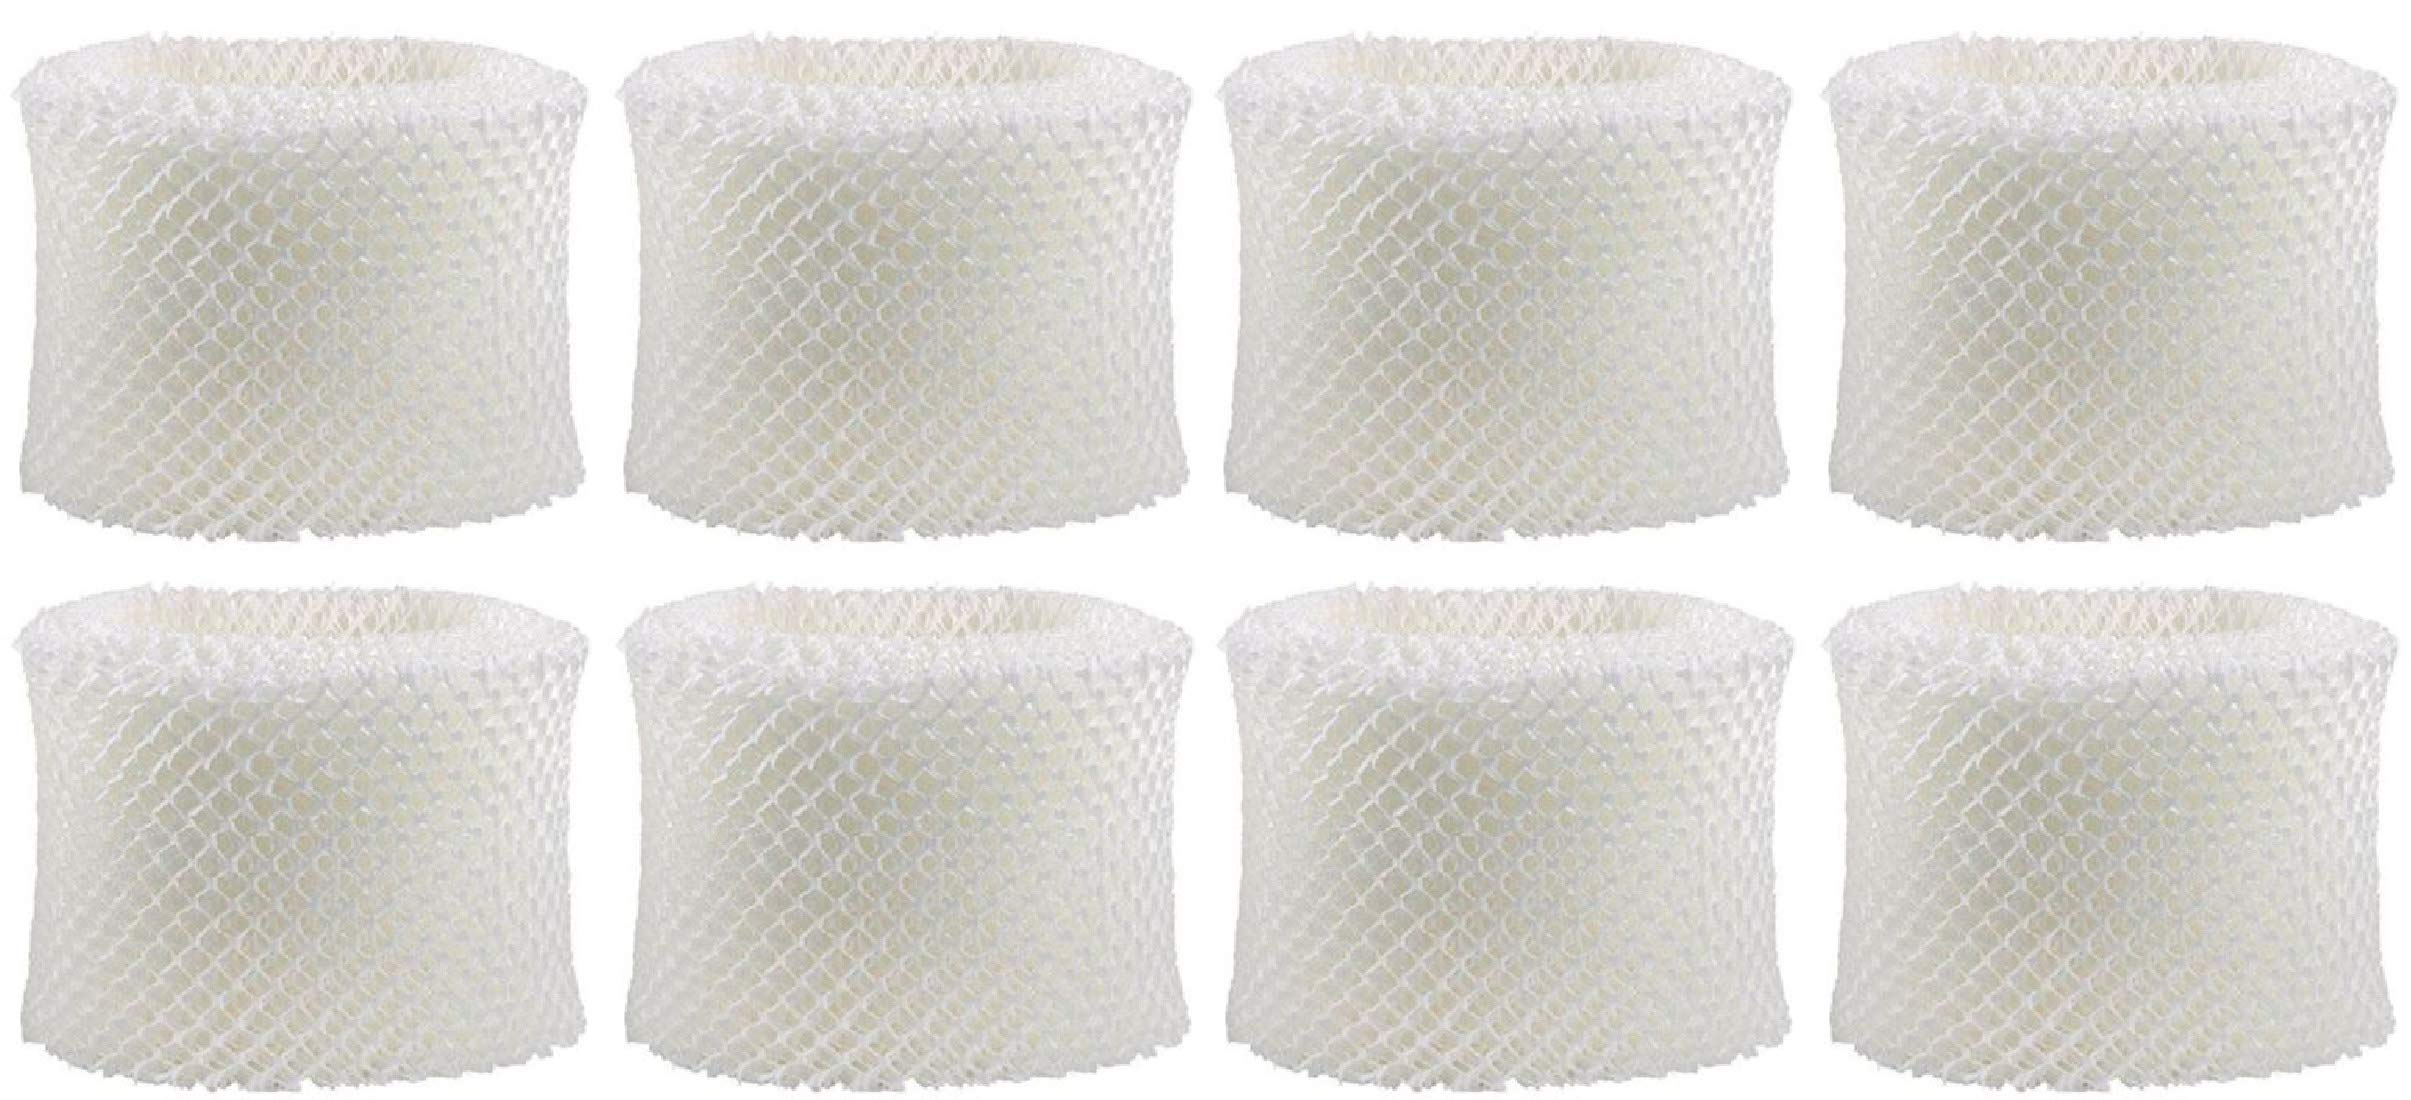 Nispira 8 Packs Humidifier Wick Filter Replacement Compatible with Holmes HWF75 HWF75CS HWF75PDQ-U Filter D Fits White Westinghouse, Sunbeam by Nispira